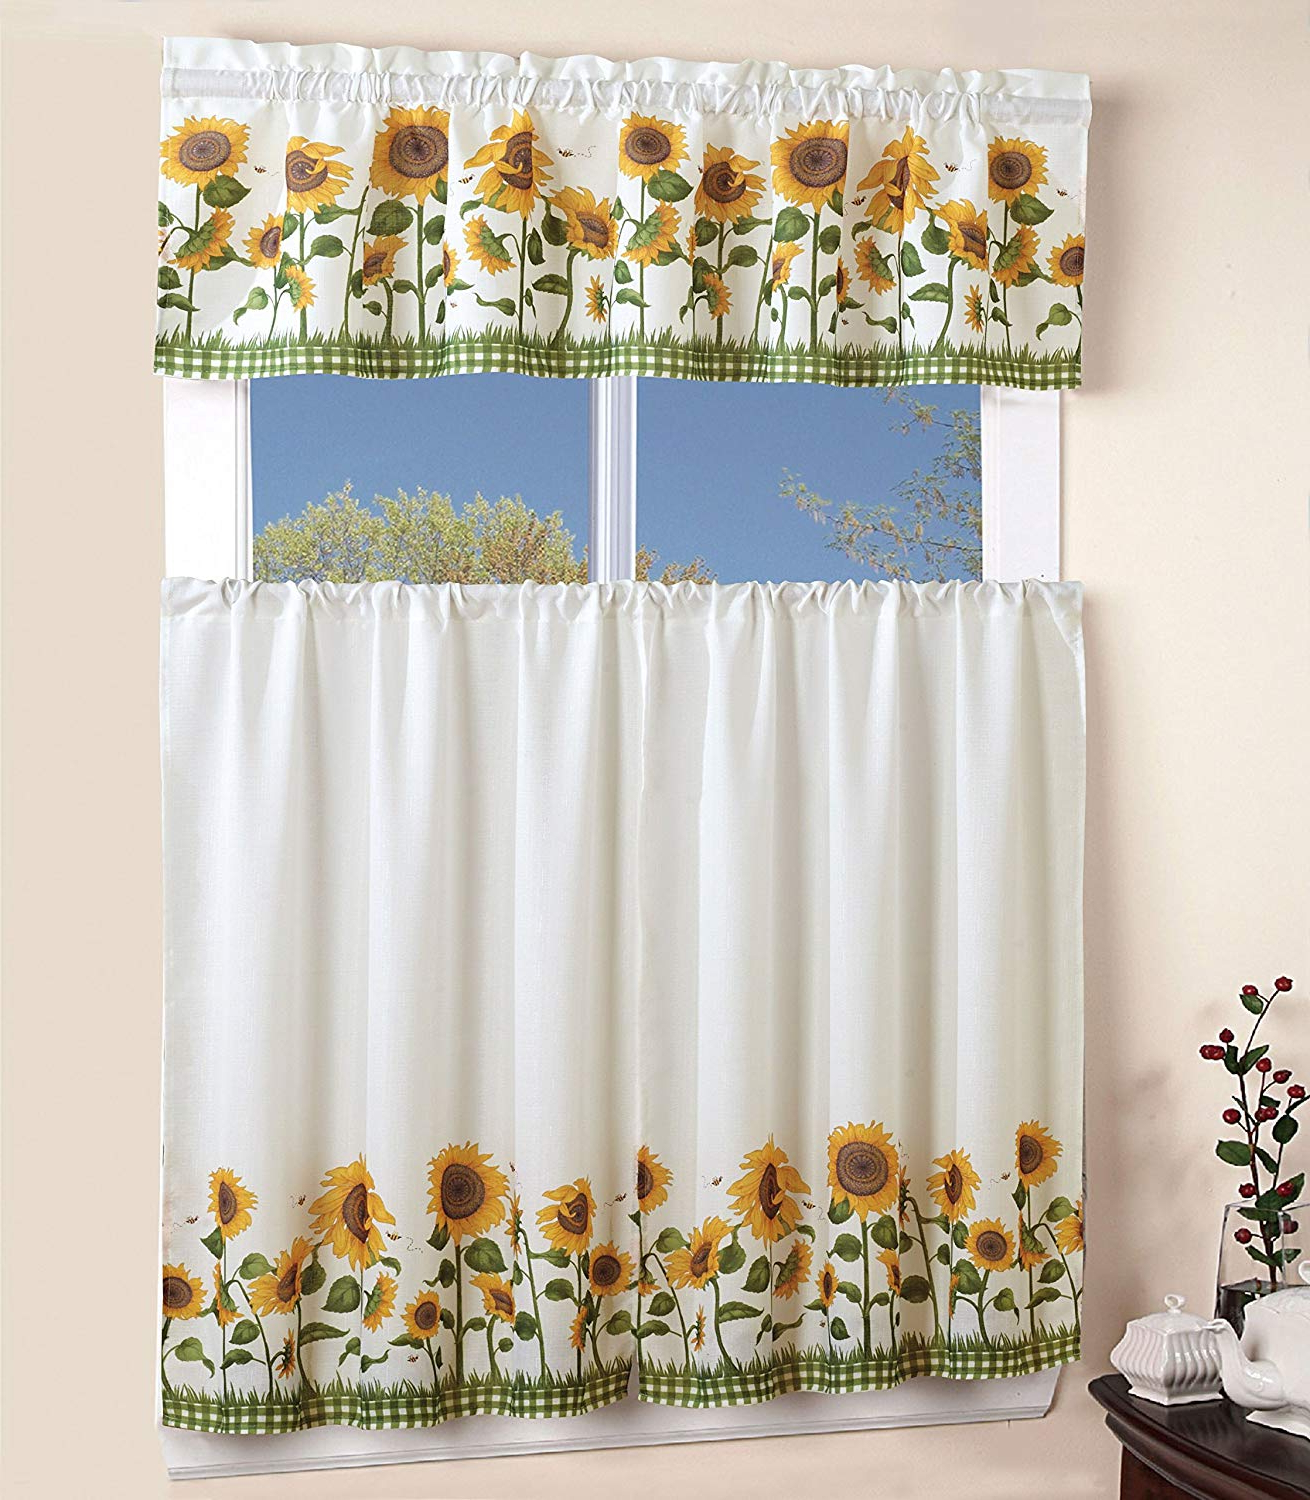 Traditional Tailored Window Curtains With Embroidered Yellow Sunflowers Throughout Most Current Elegant Window Treatment Sunflower 3Piece Kitchen Curtain Lovely Tier And Valance Set (View 12 of 20)